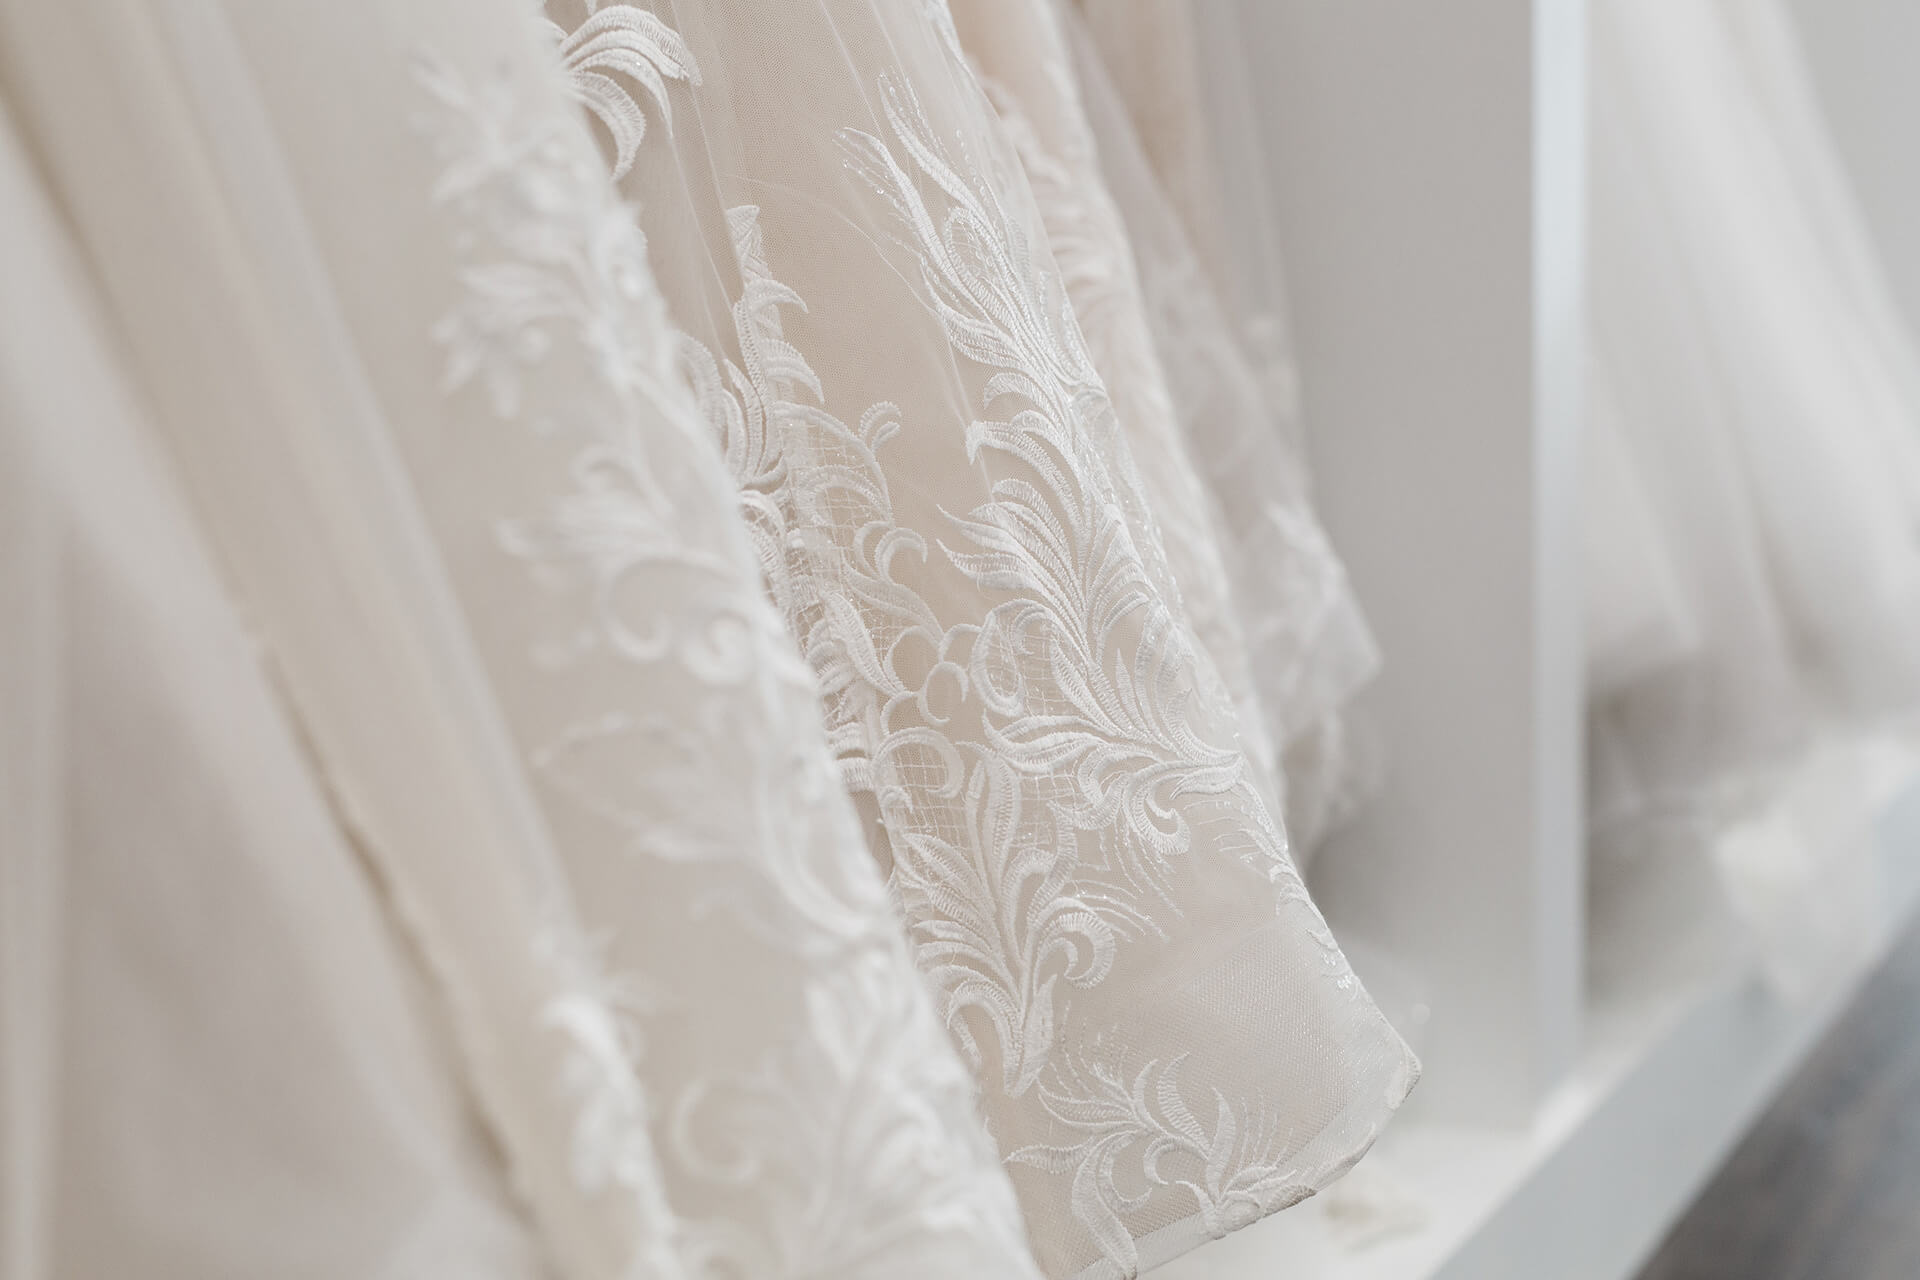 close up shot of Belle Mariee Bridal dresses